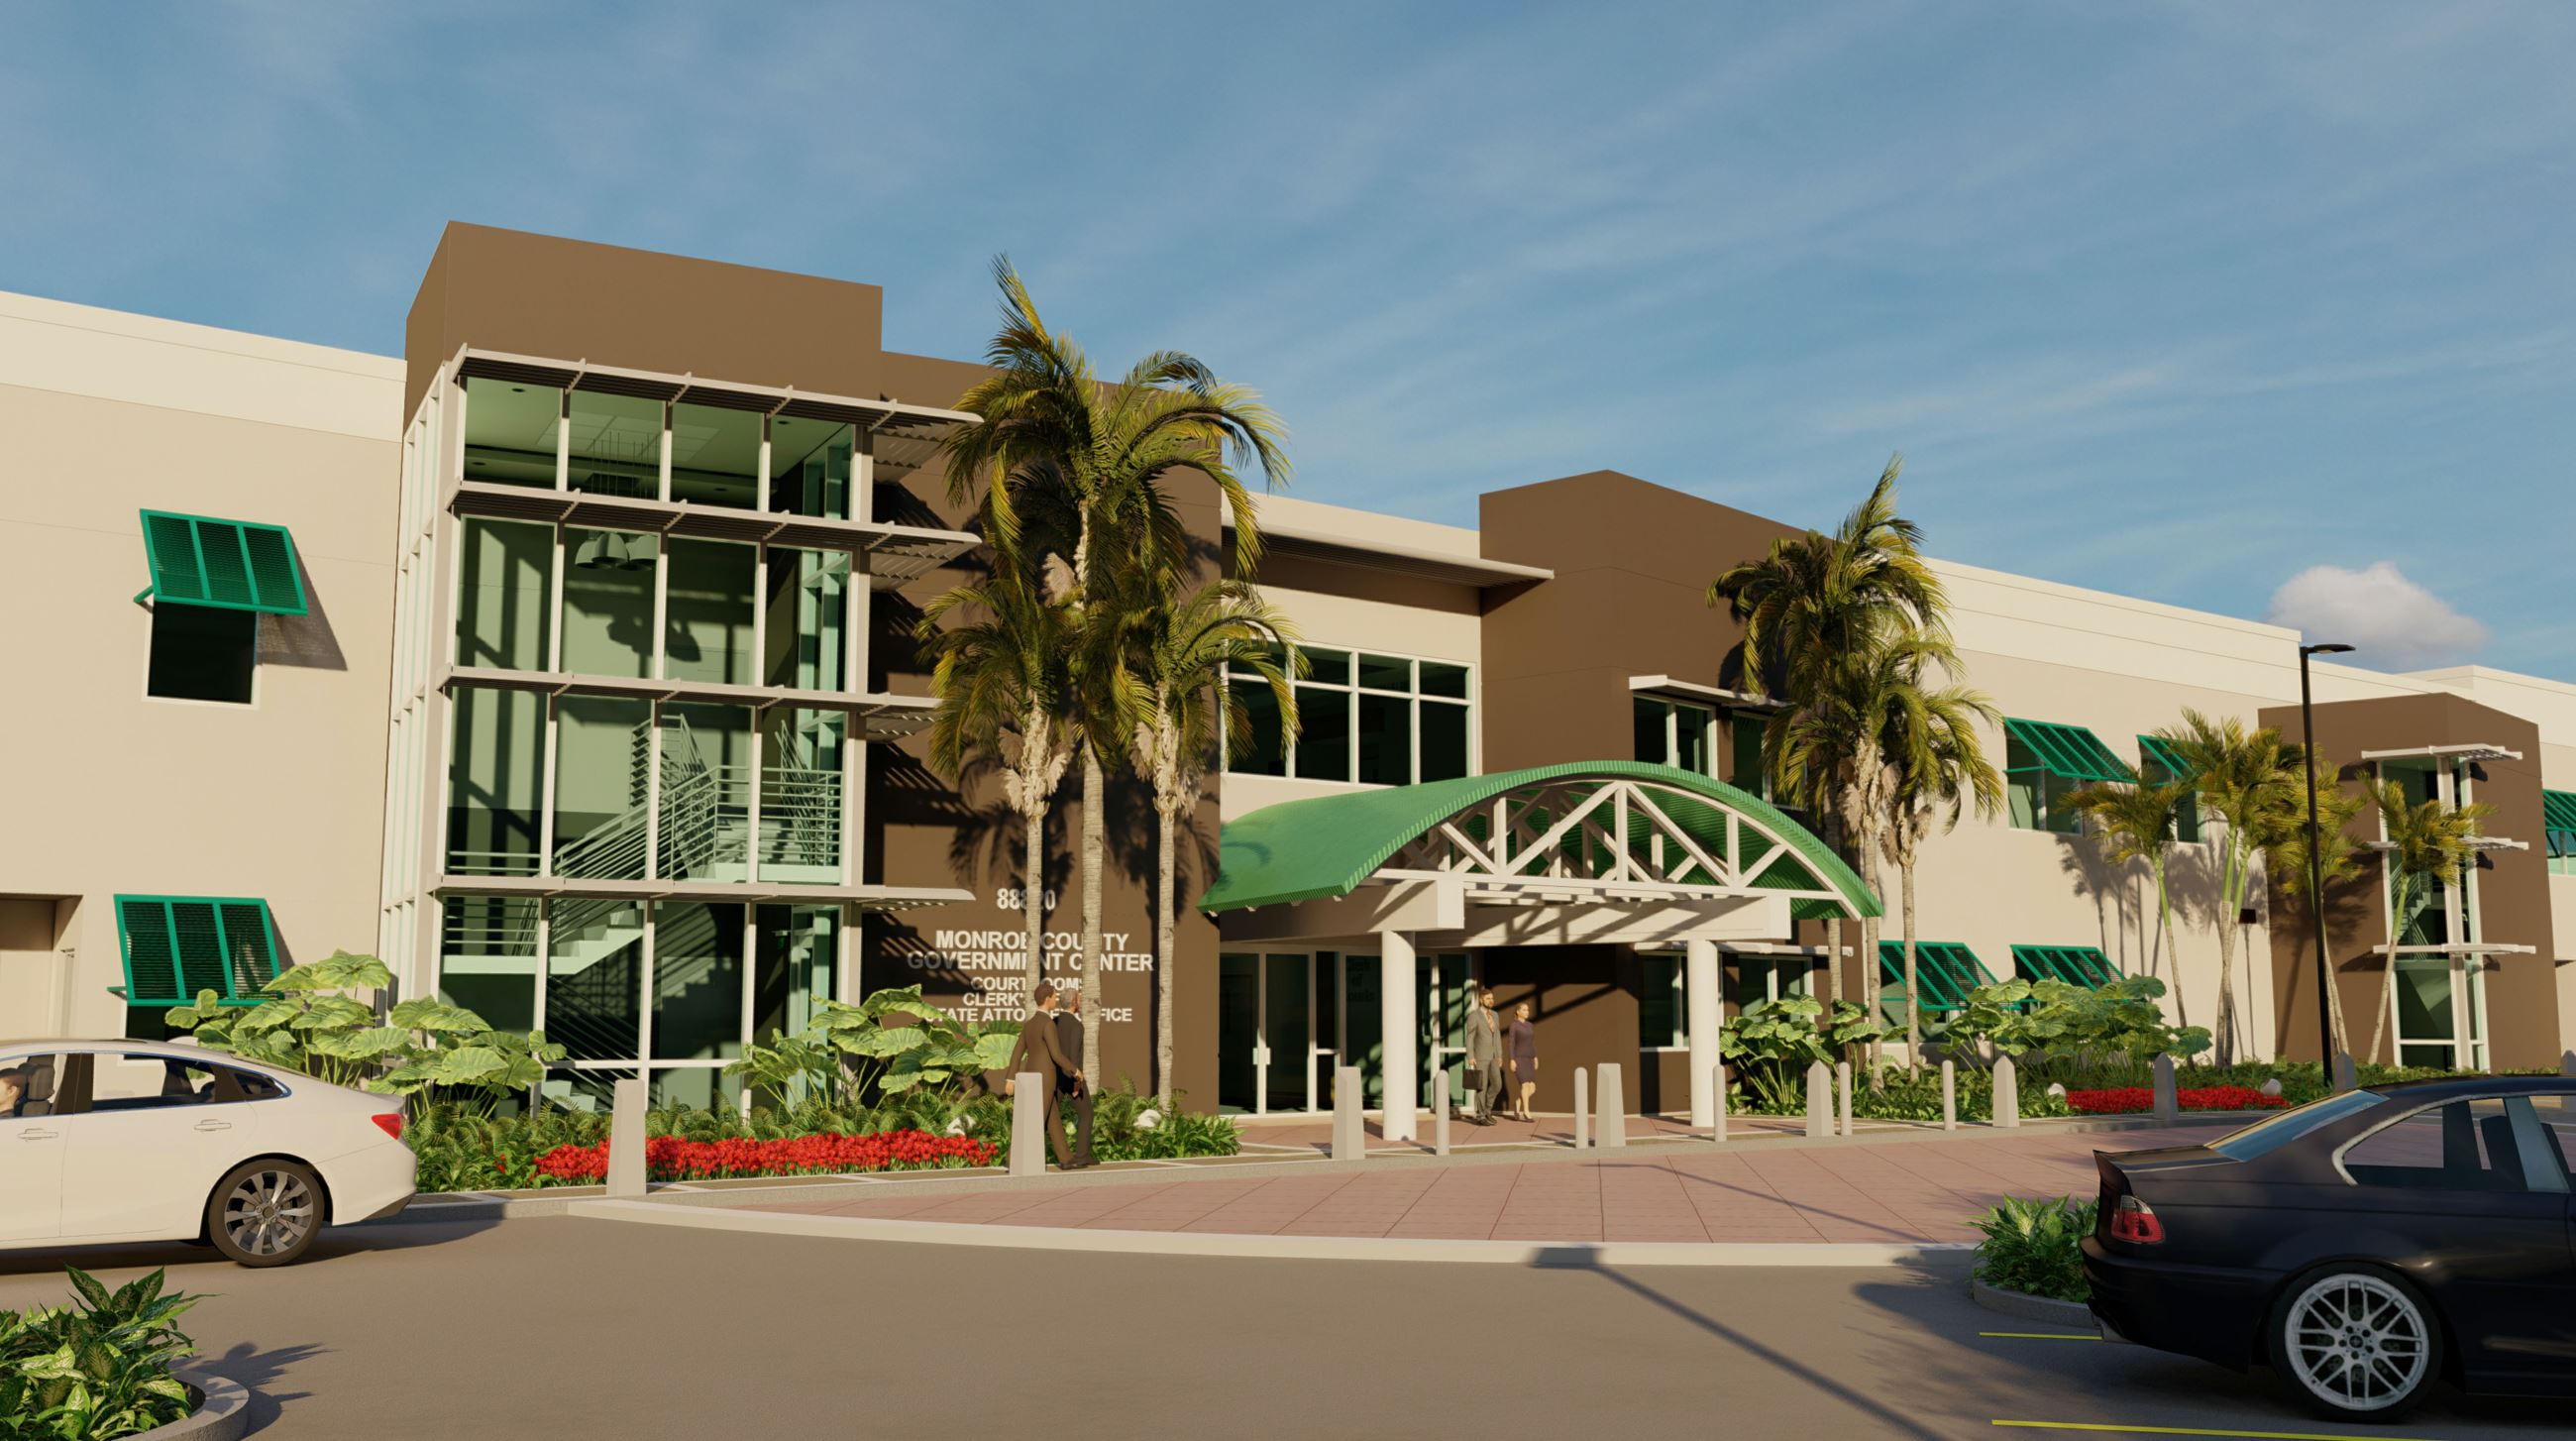 Artist Rendering of the Plantation Key Courthouse